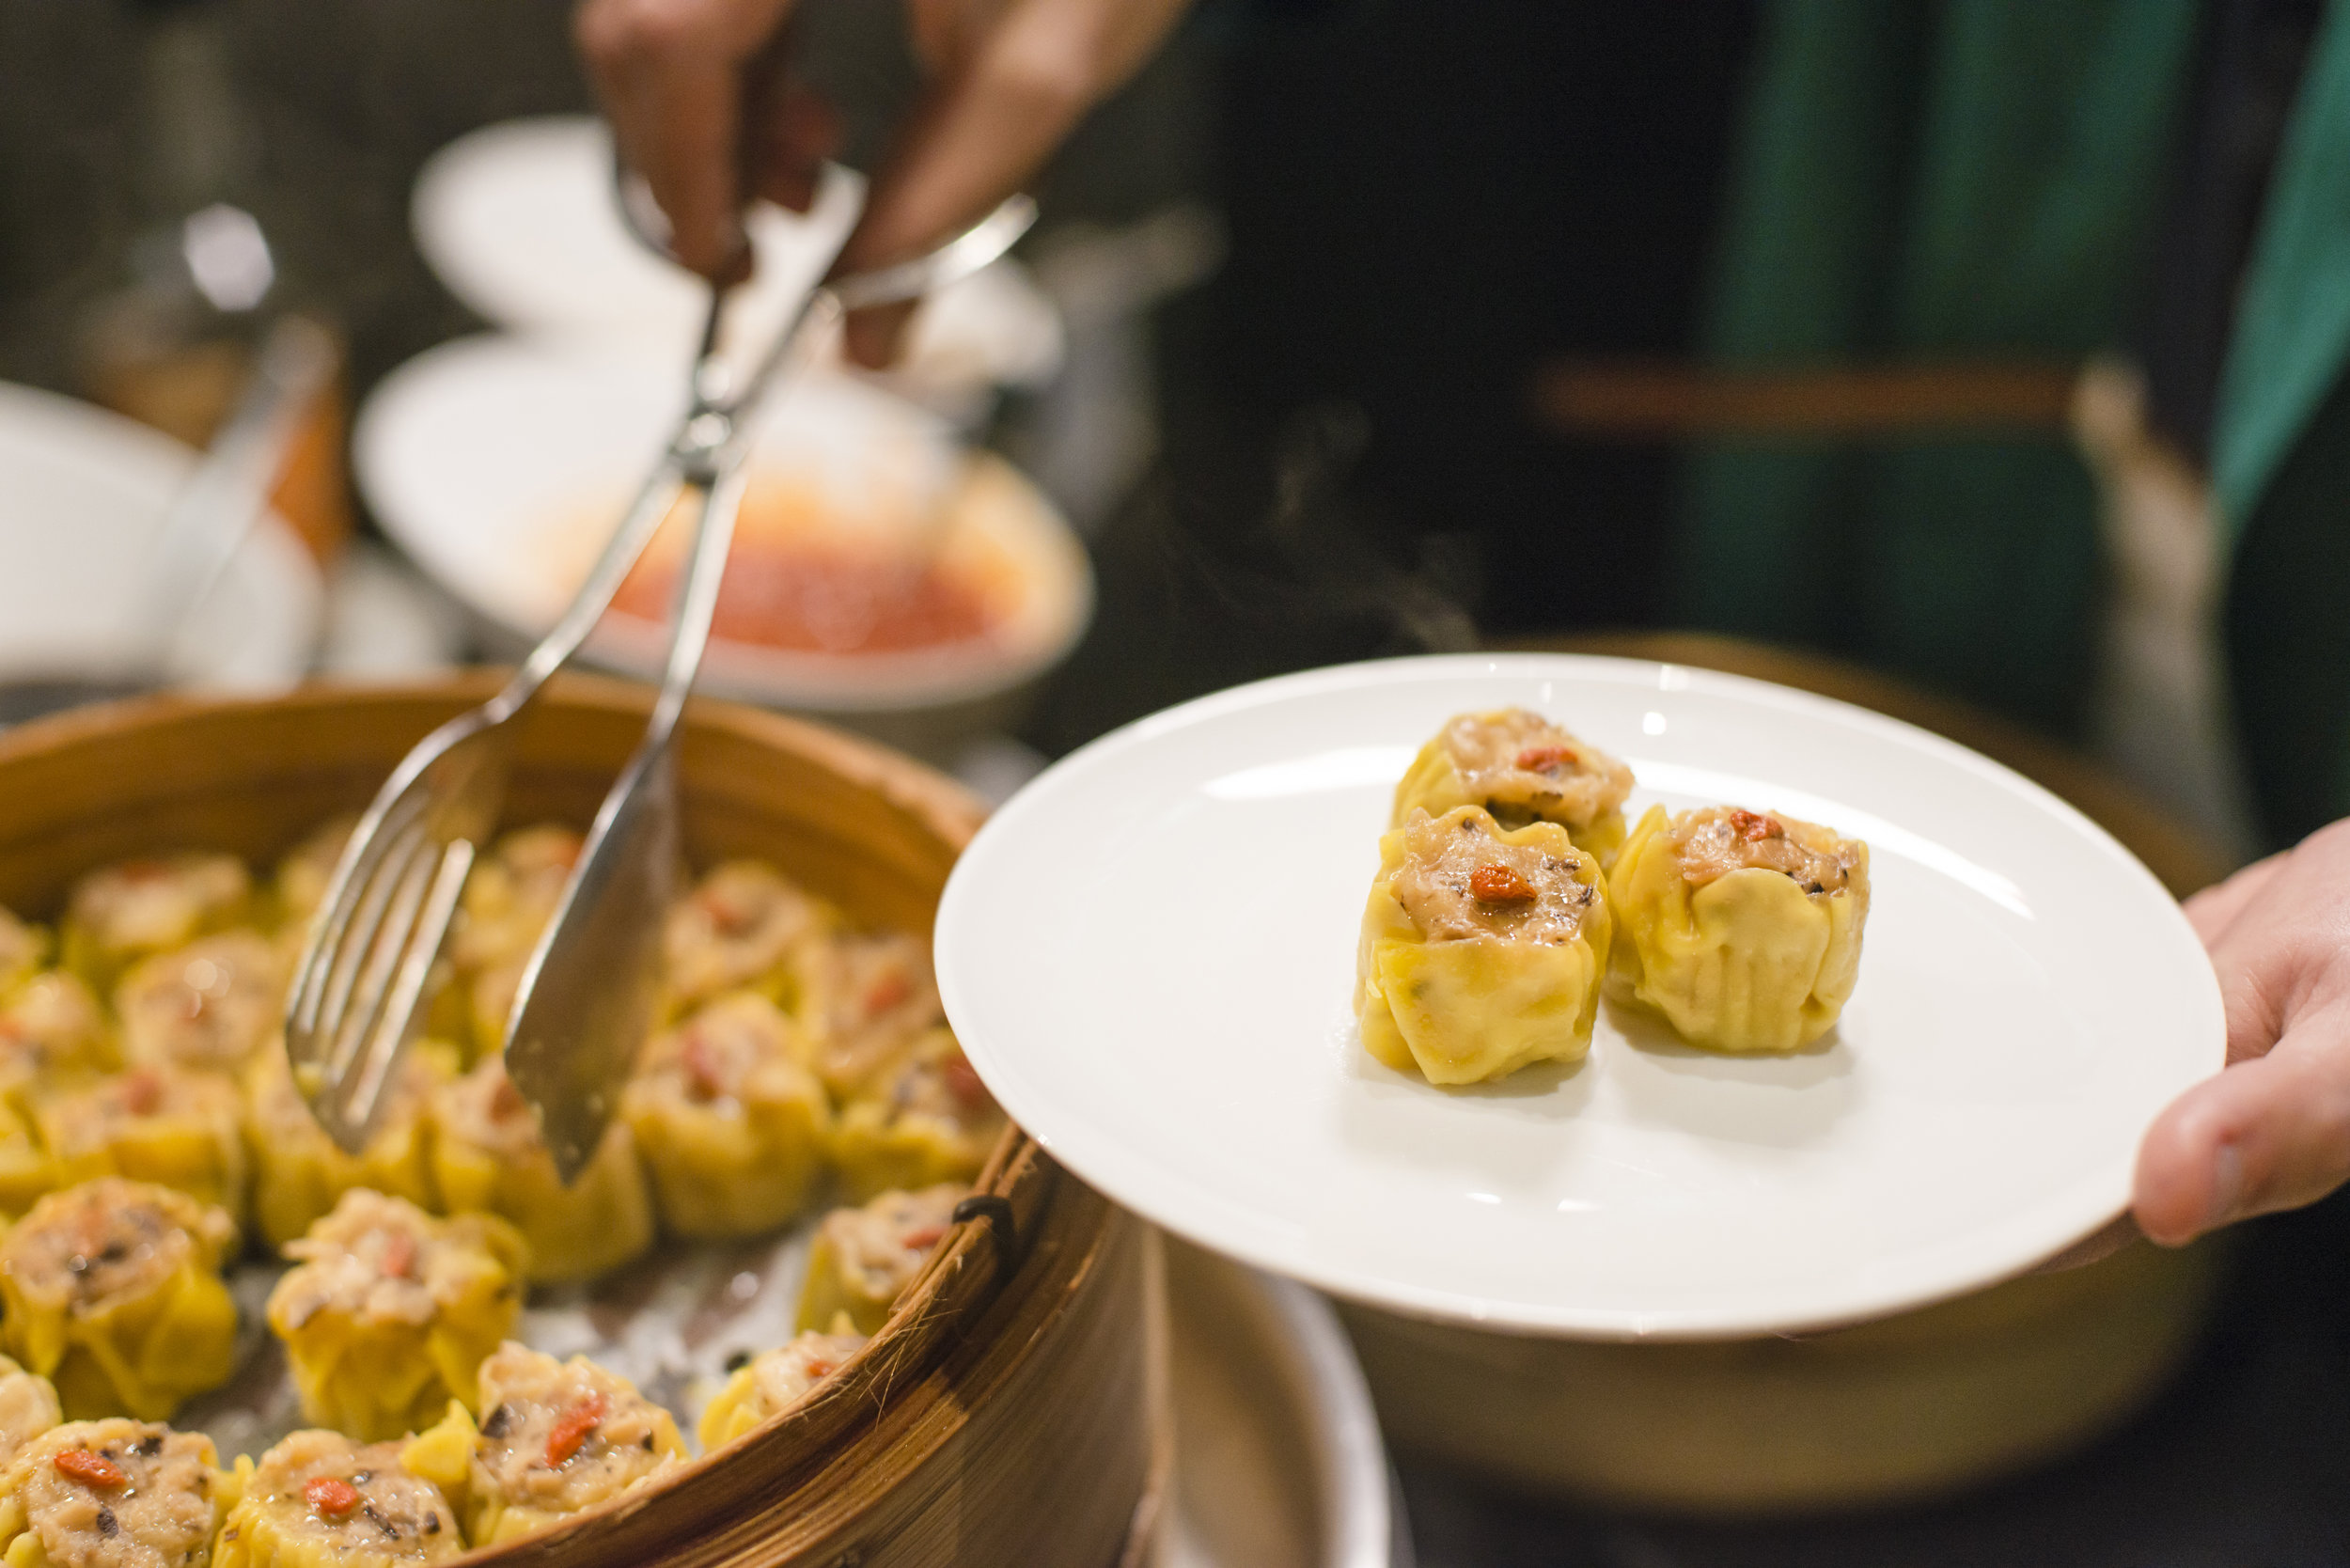 Some of Hong Kong's most delicate dumplings at The Bistro in The Bridge Lounge.